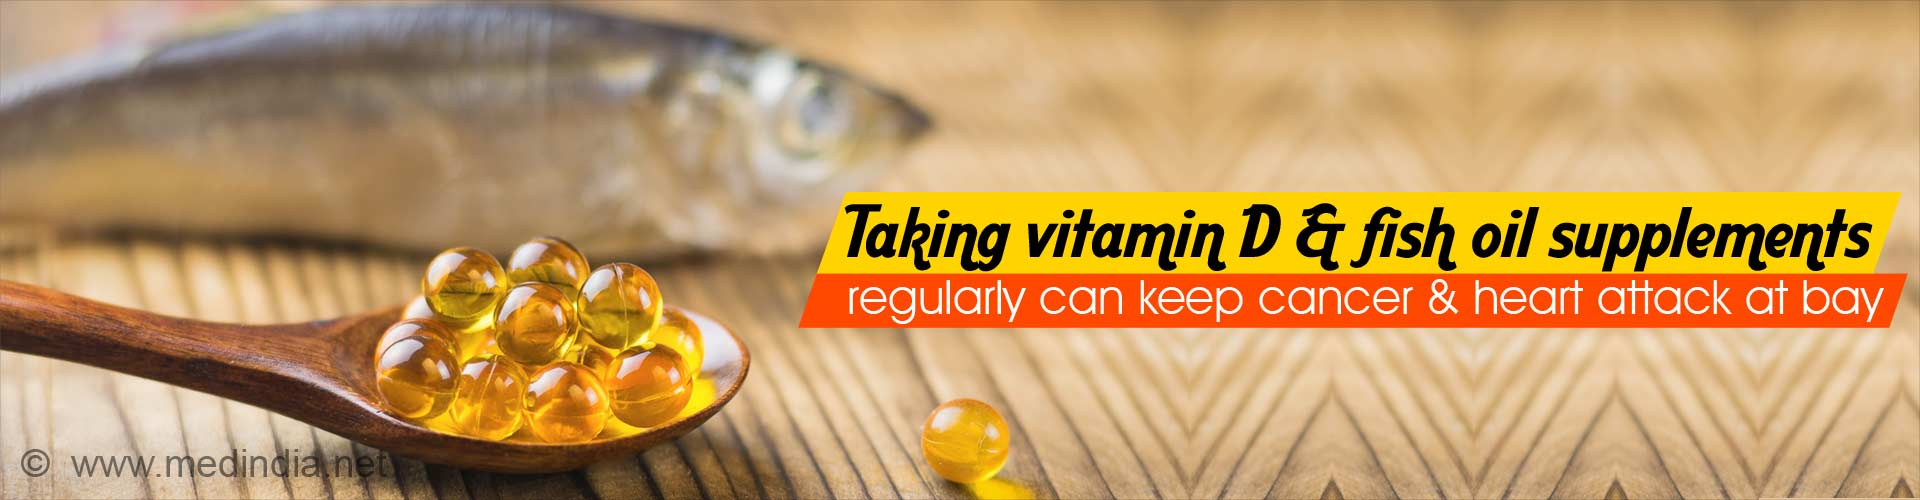 Fish Oil, Vitamin D can Reduce Cancer, Heart Attack Risk